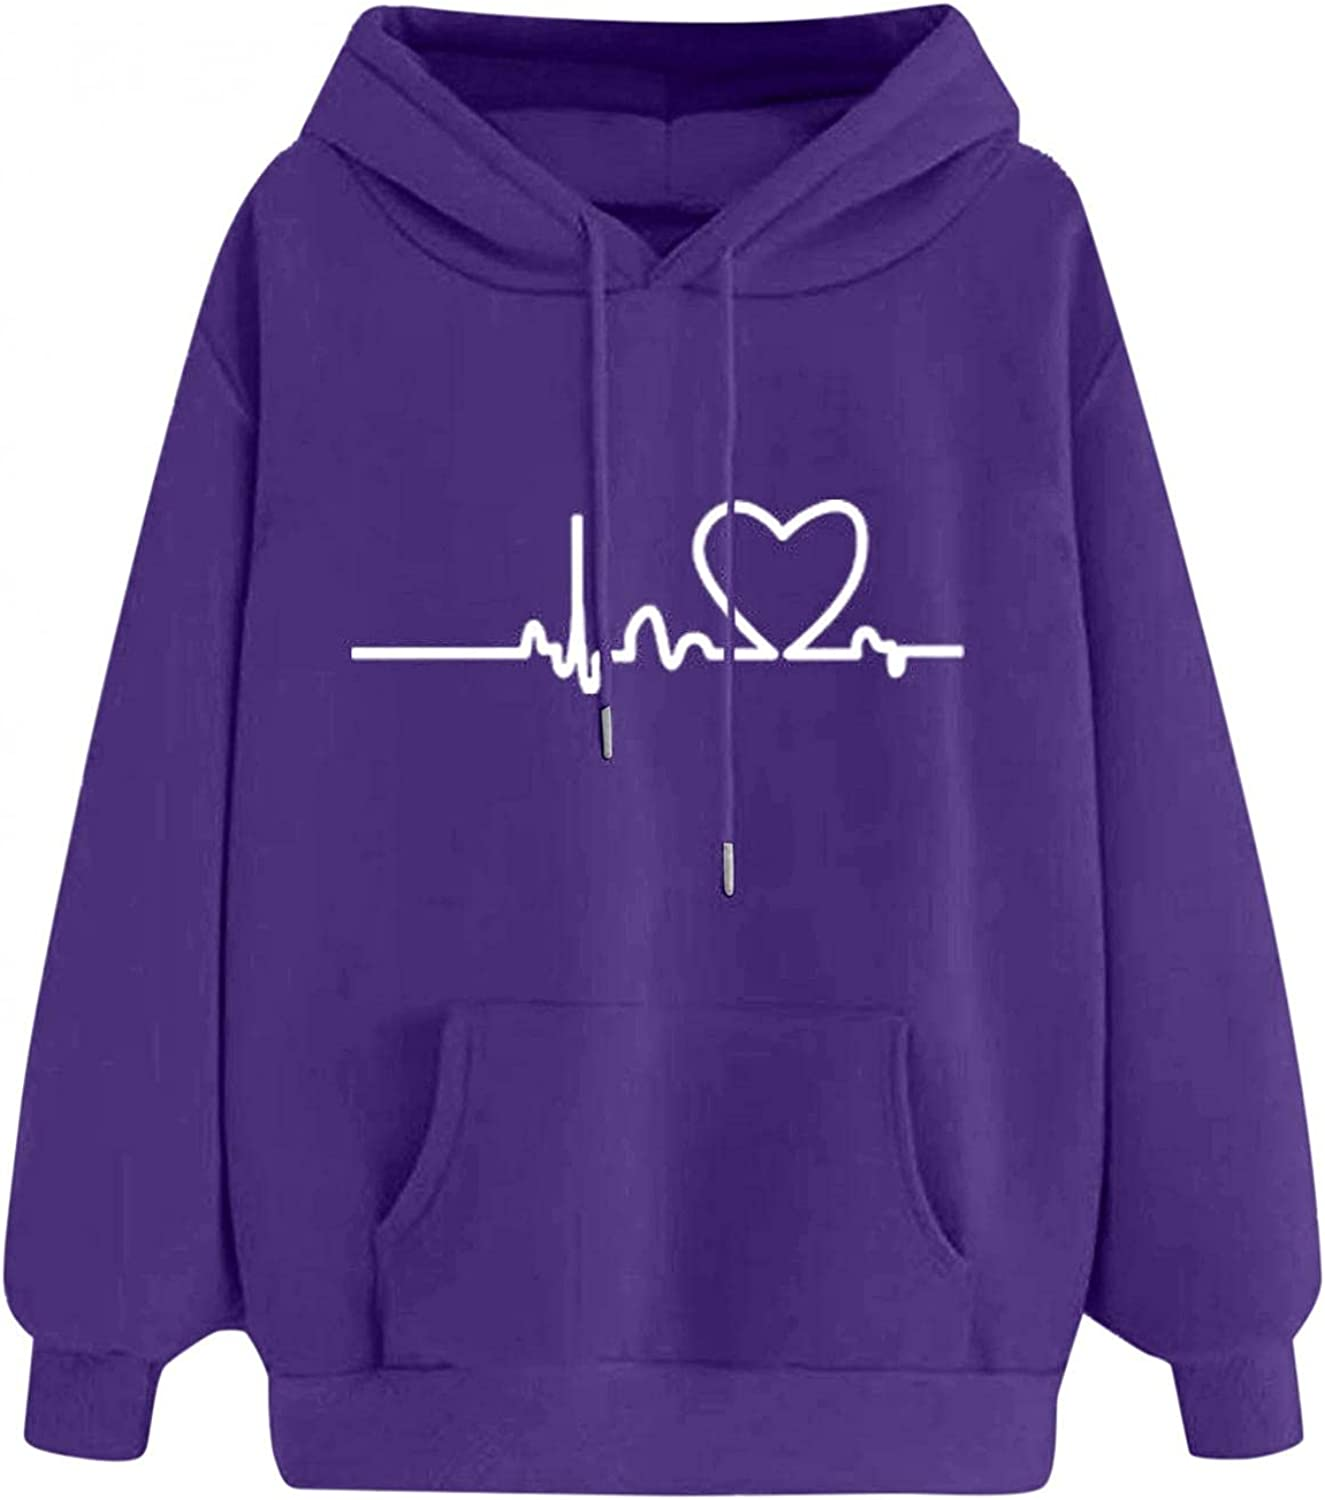 Hotkey Hoodies for Women, Womens Sweatshirt Heartbeat Print Hooded Pullover Casual Long Sleeve Tops with Large Front Pocket